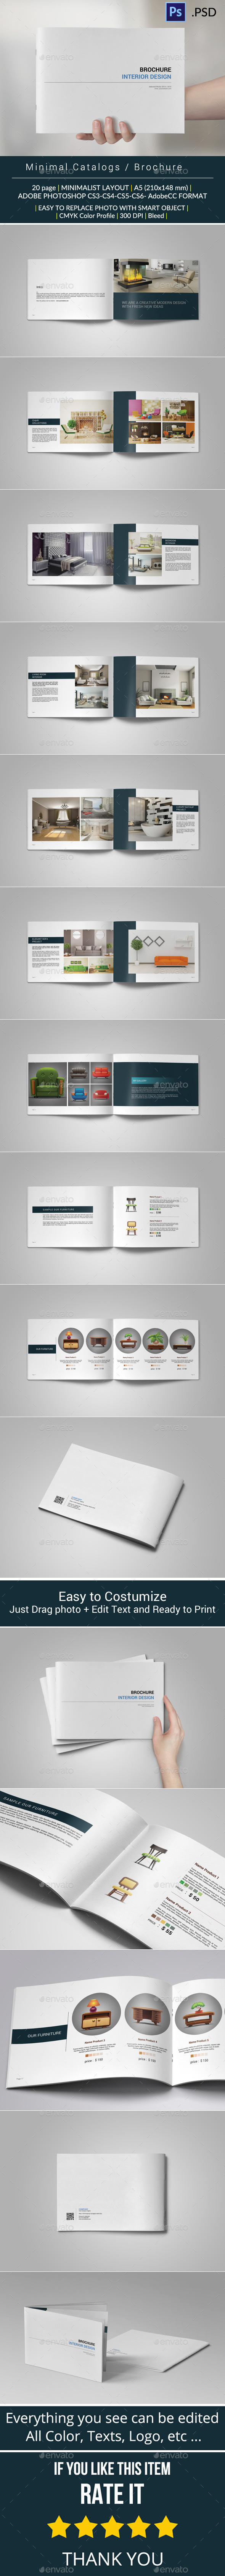 Minimal Catalogs Brochure Template